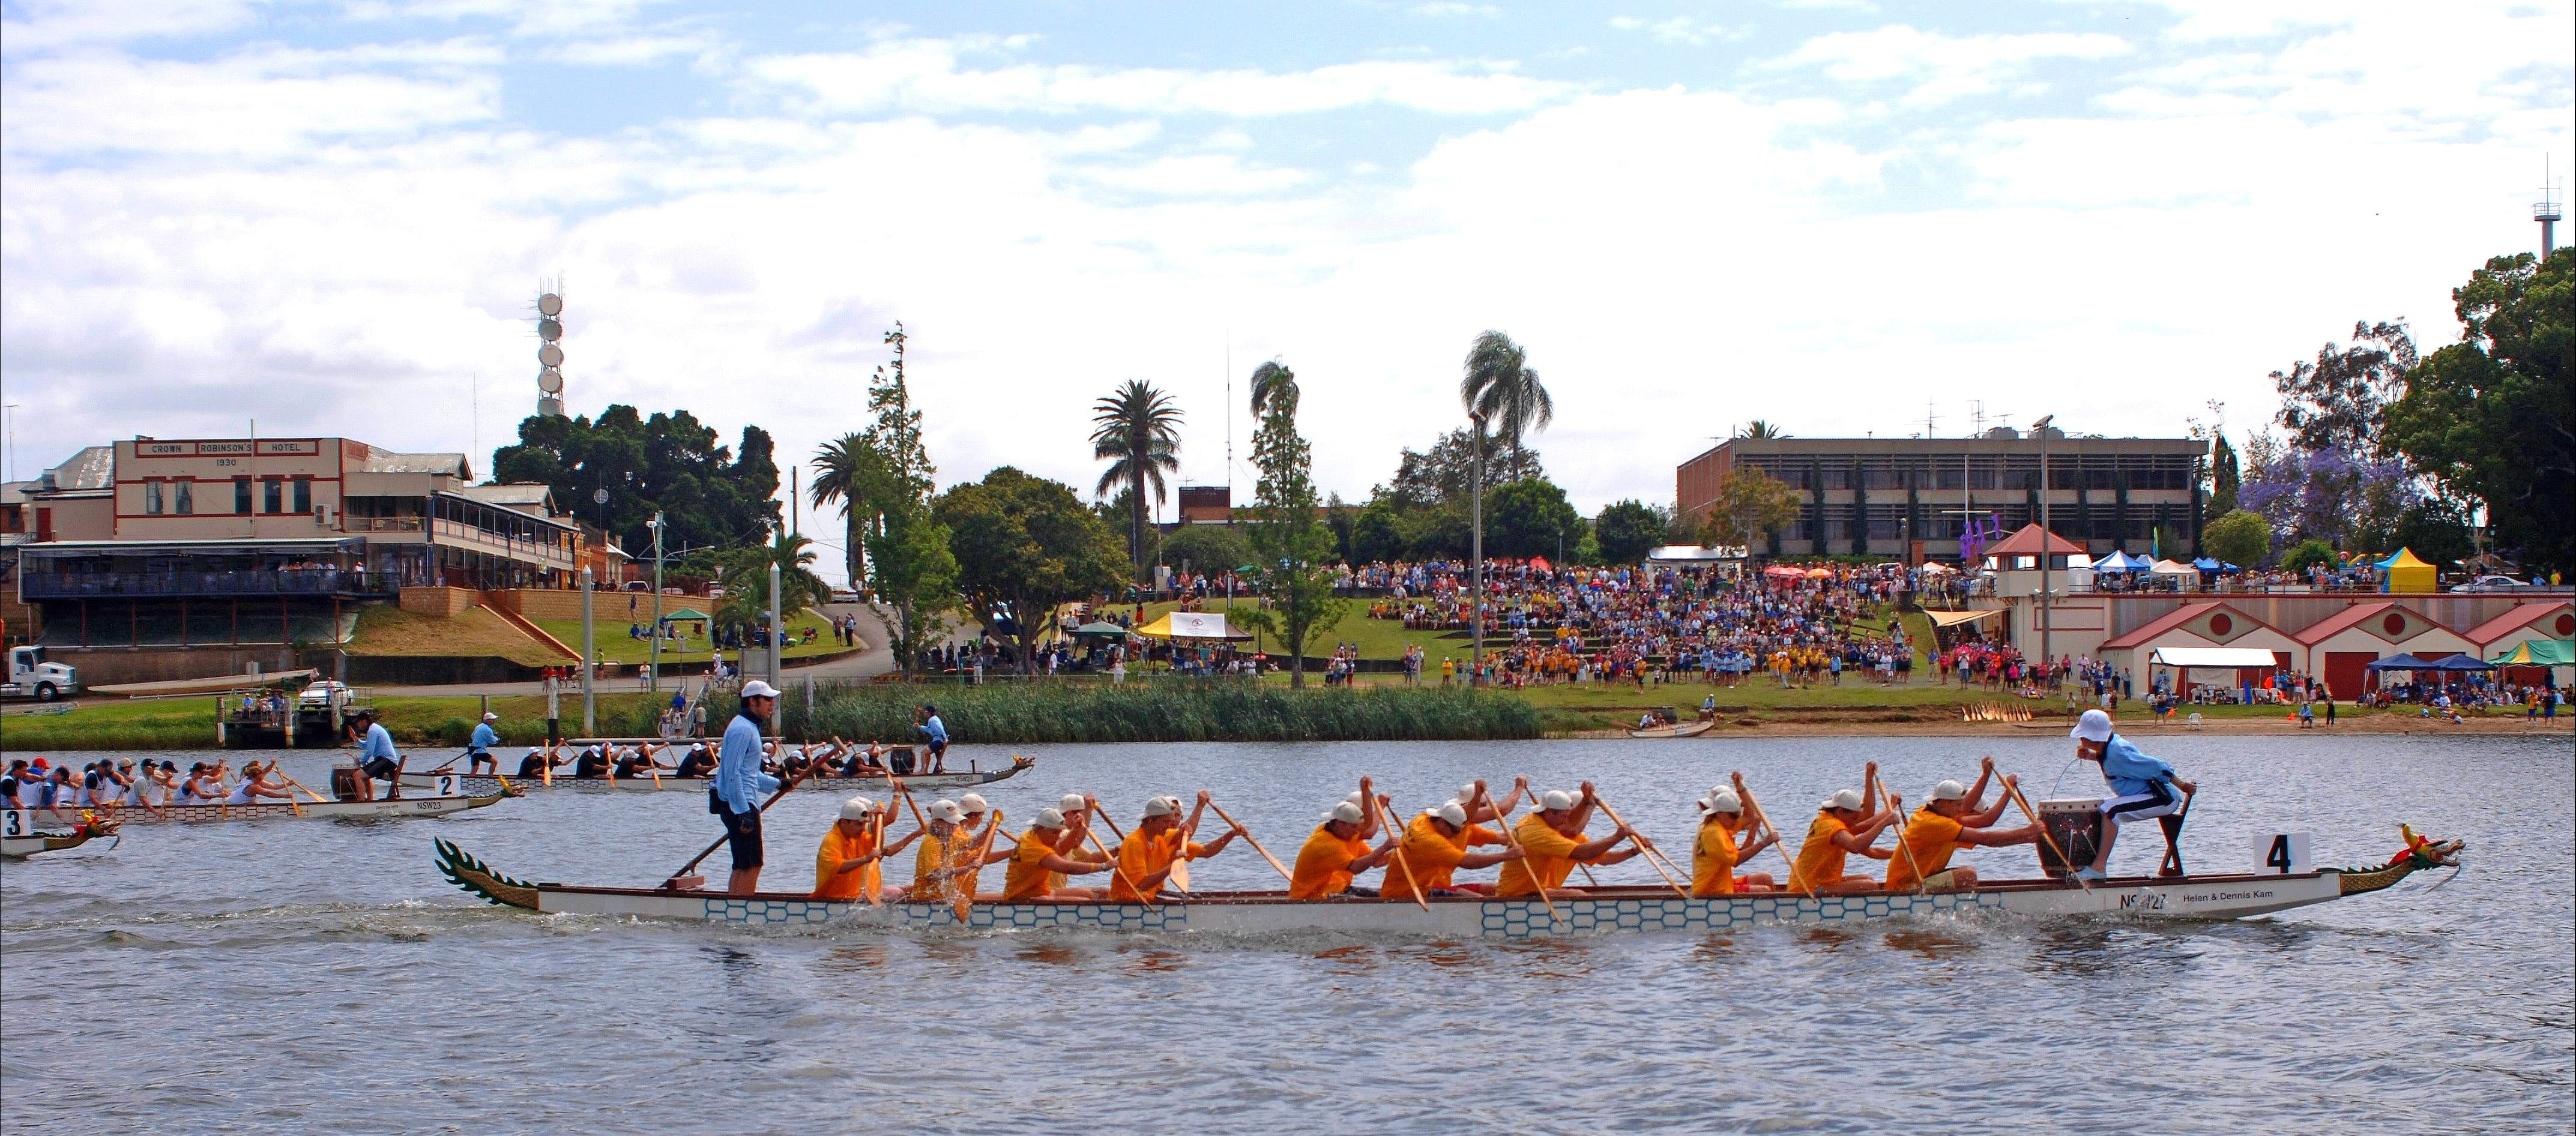 Jacaranda Dragon Boat Races - Tourism Bookings WA